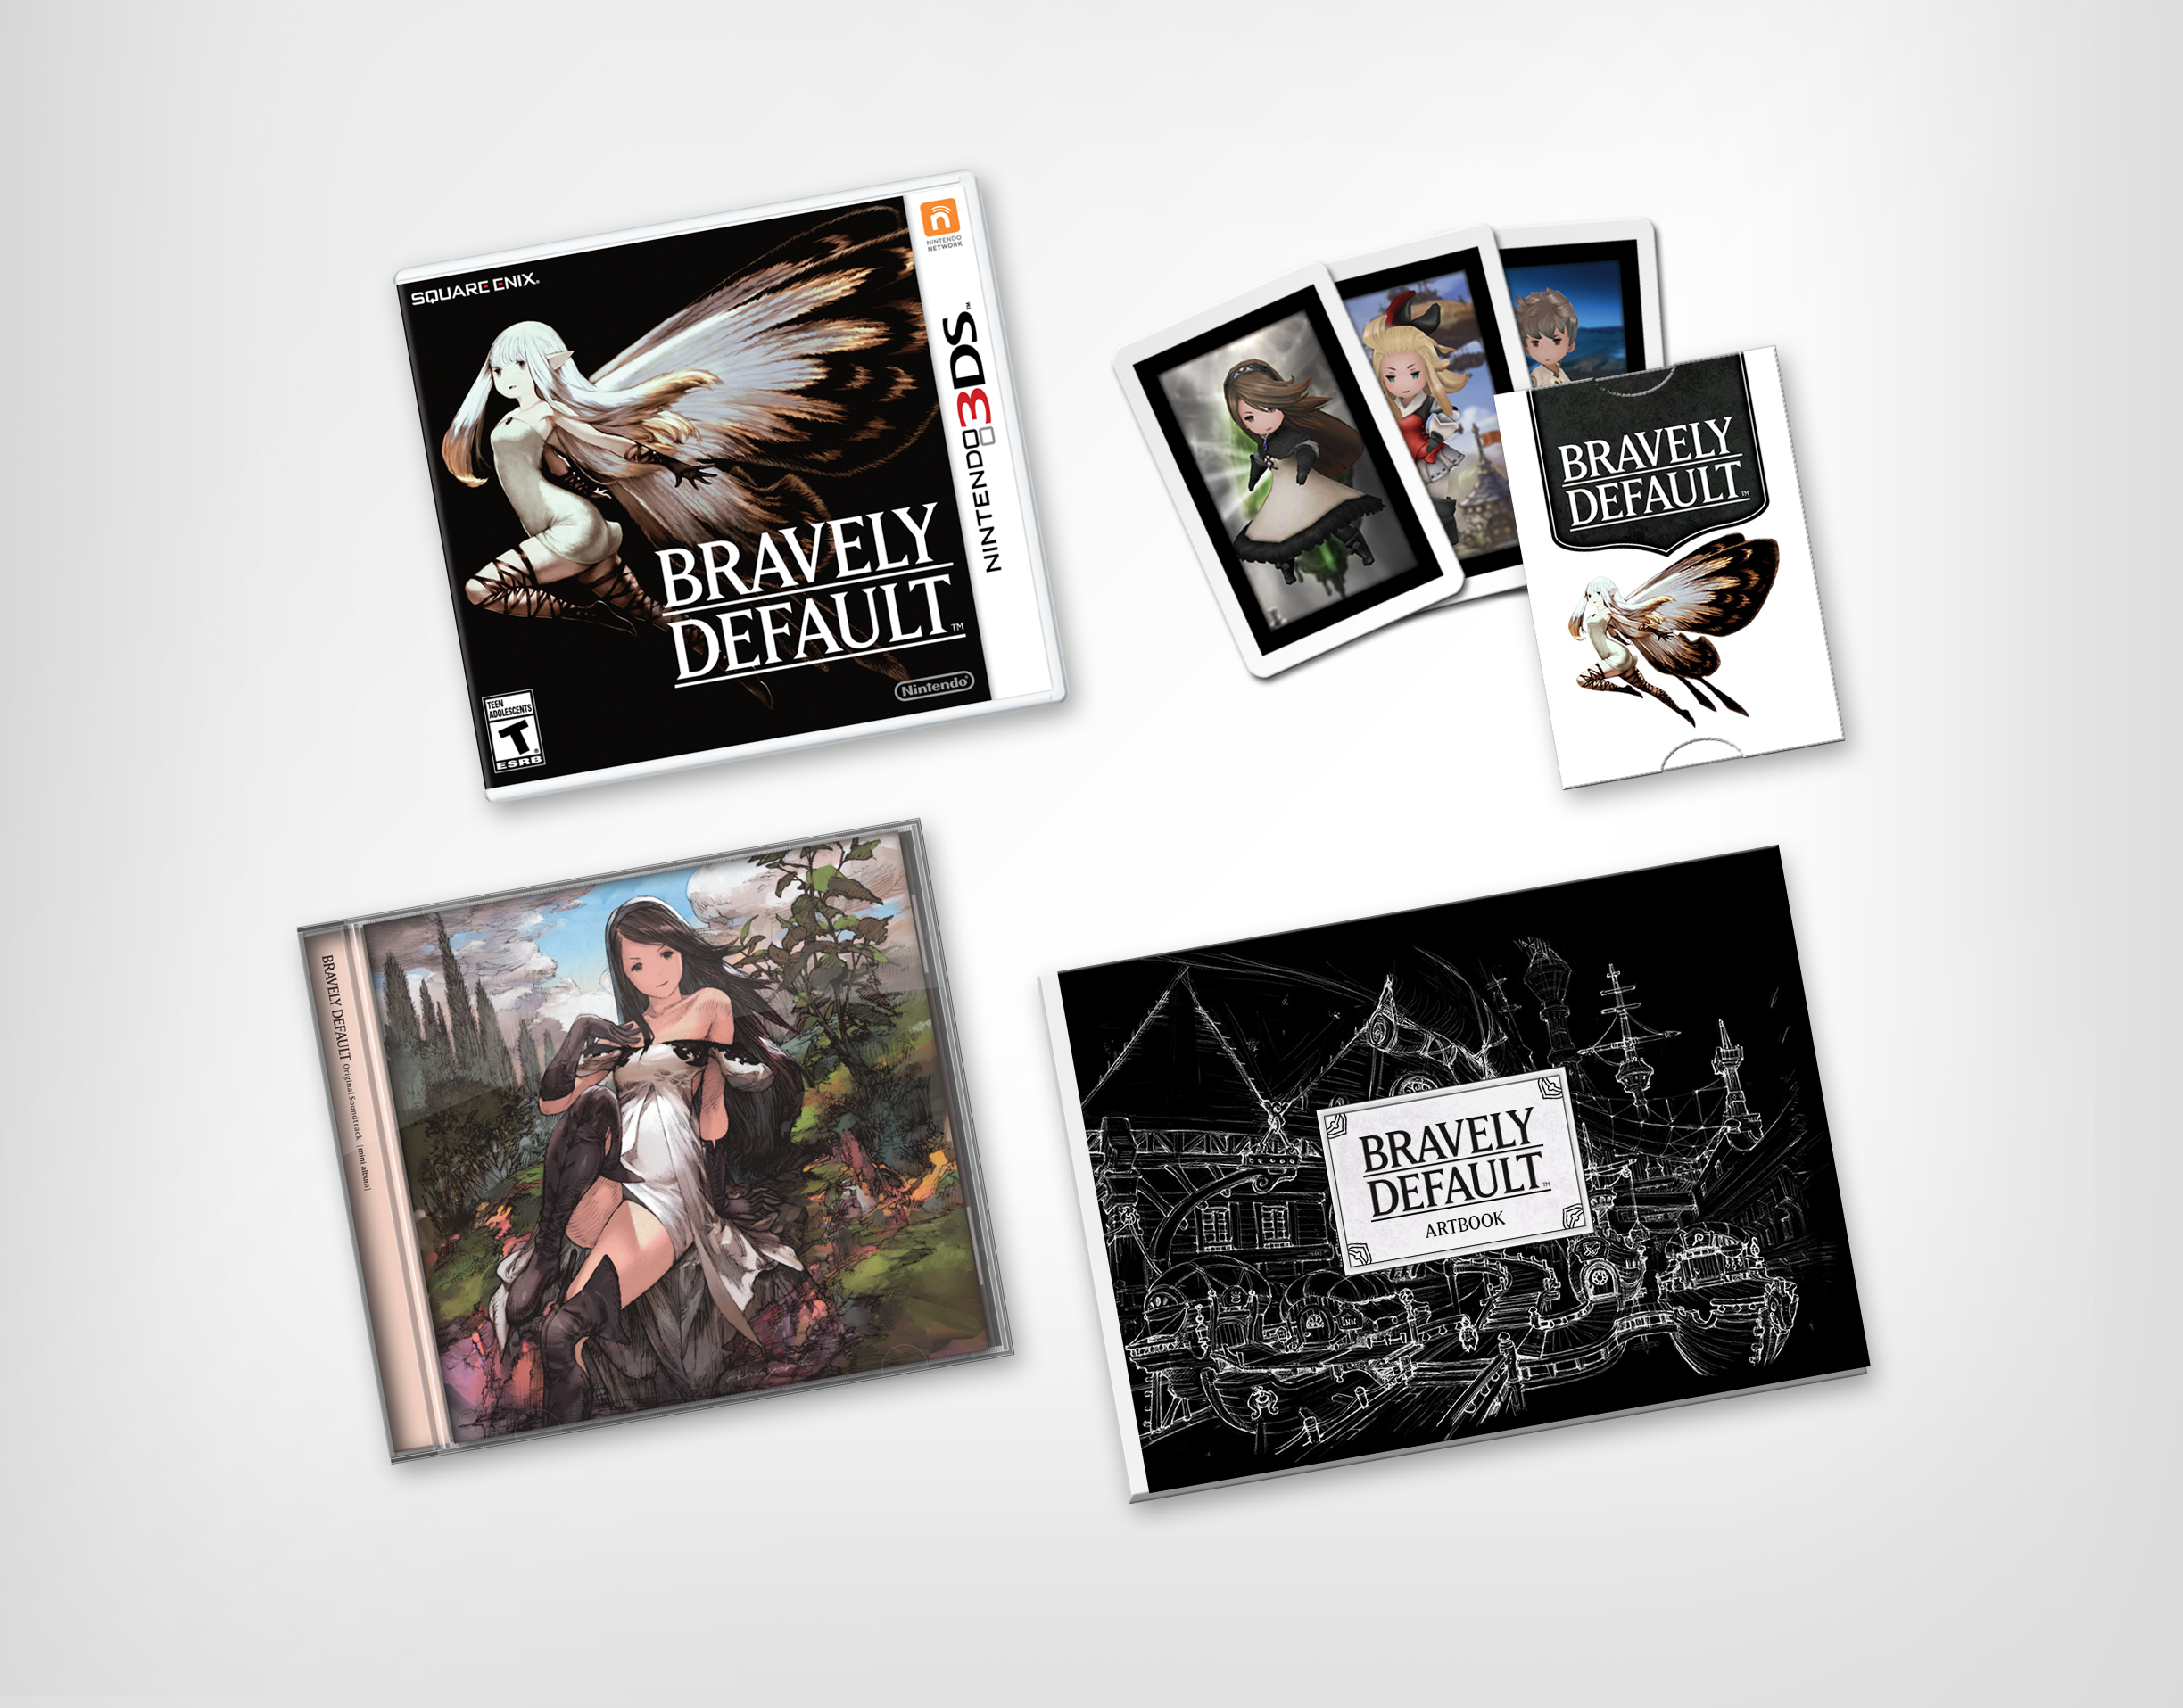 Bravely-Default-Limited-Edition-USA-Cana